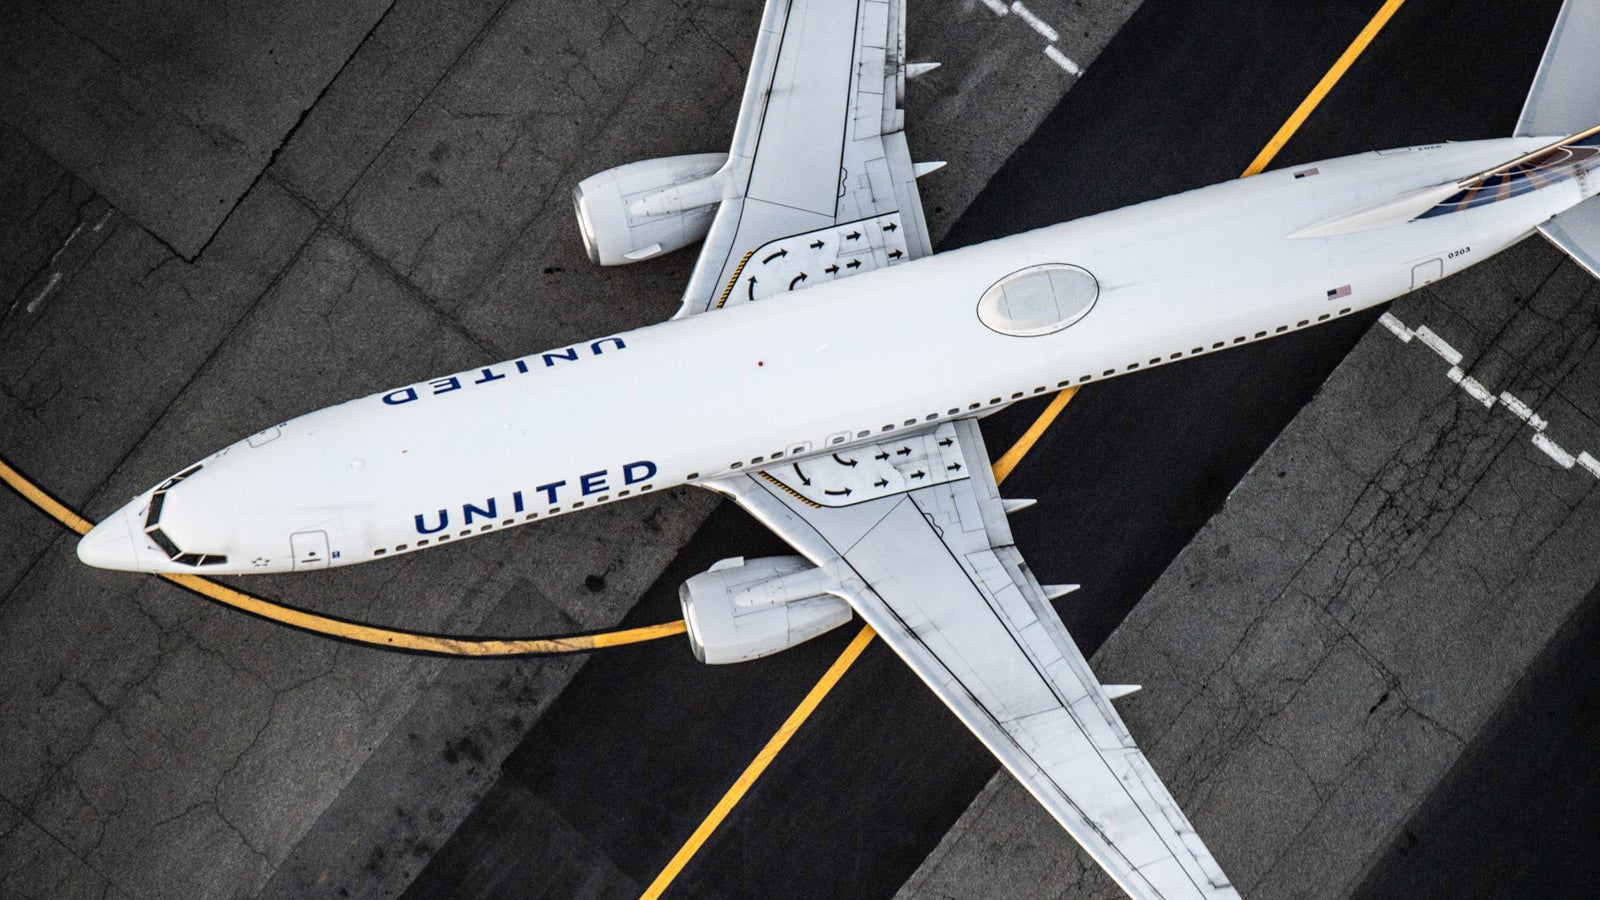 Pfizer books United charter flights to position its COVID-19 vaccine